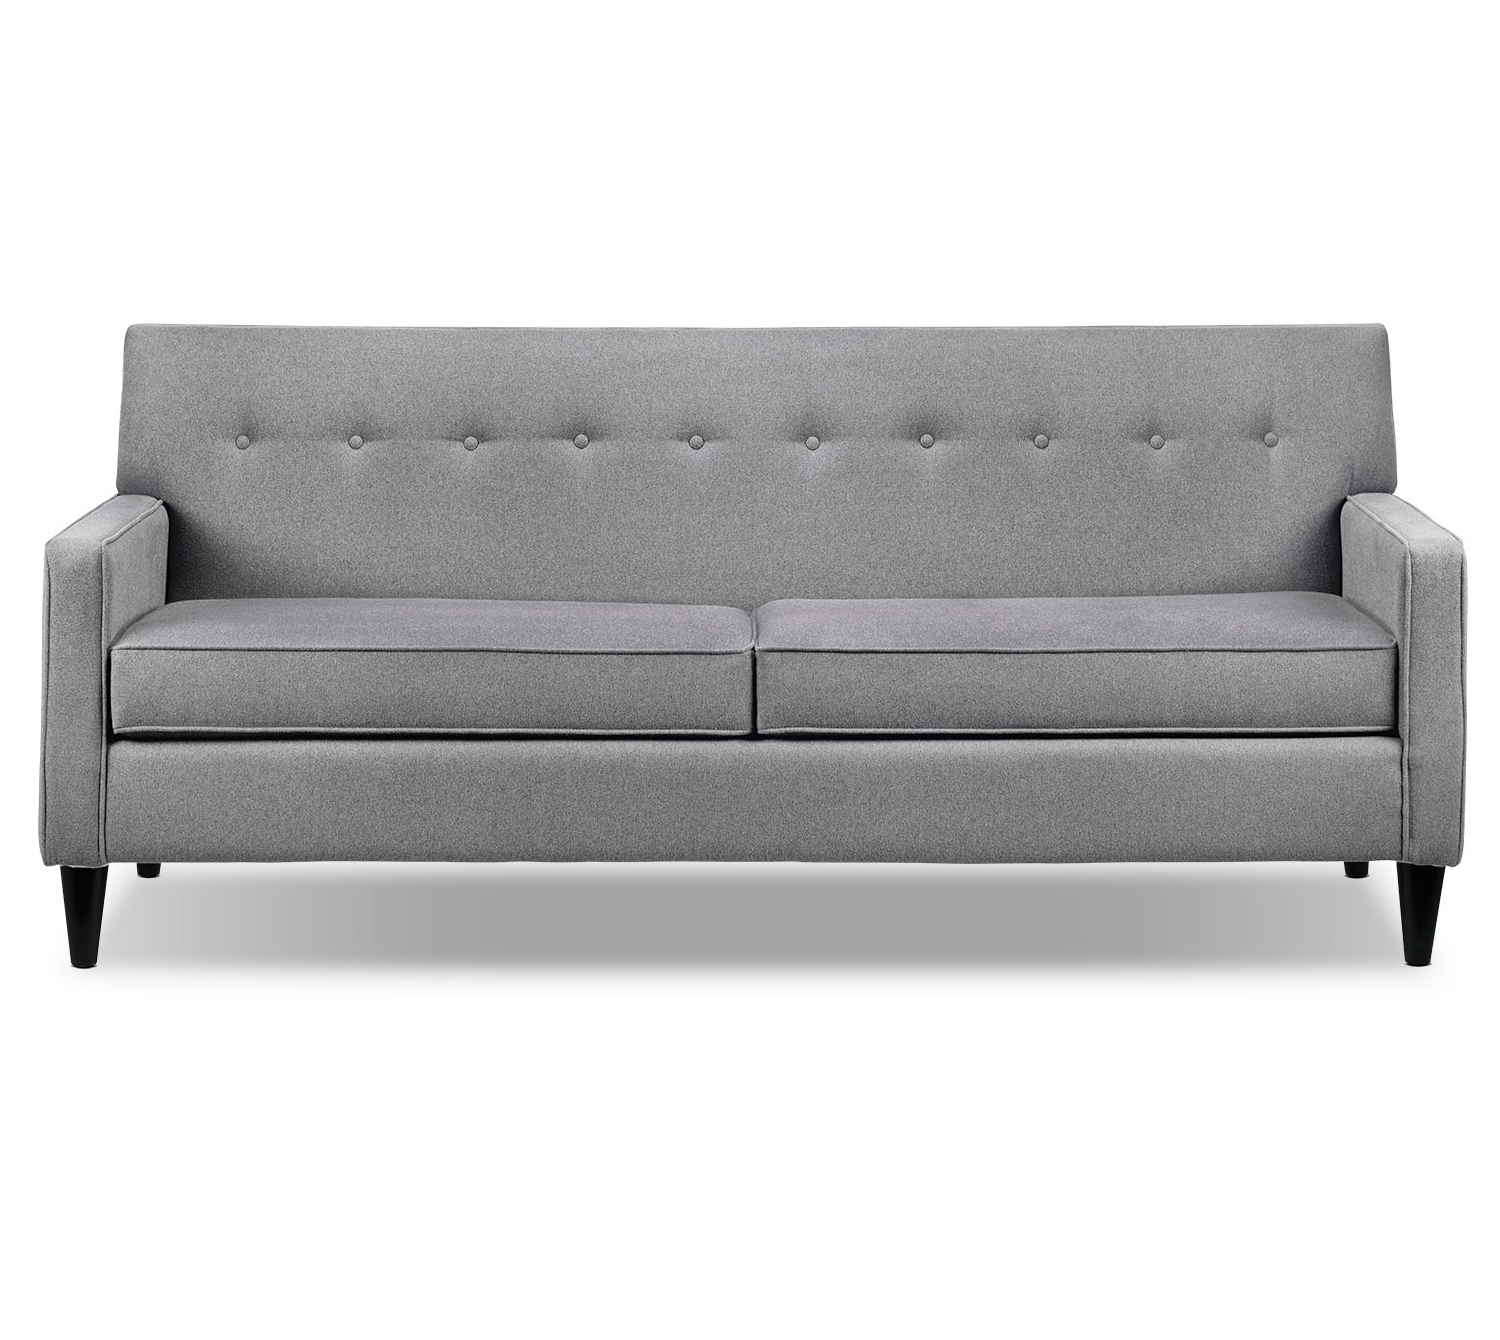 Newest Newfoundland Sectional Sofas Within Specter Sofa – Hayward's – The Best Furniture St (View 8 of 15)